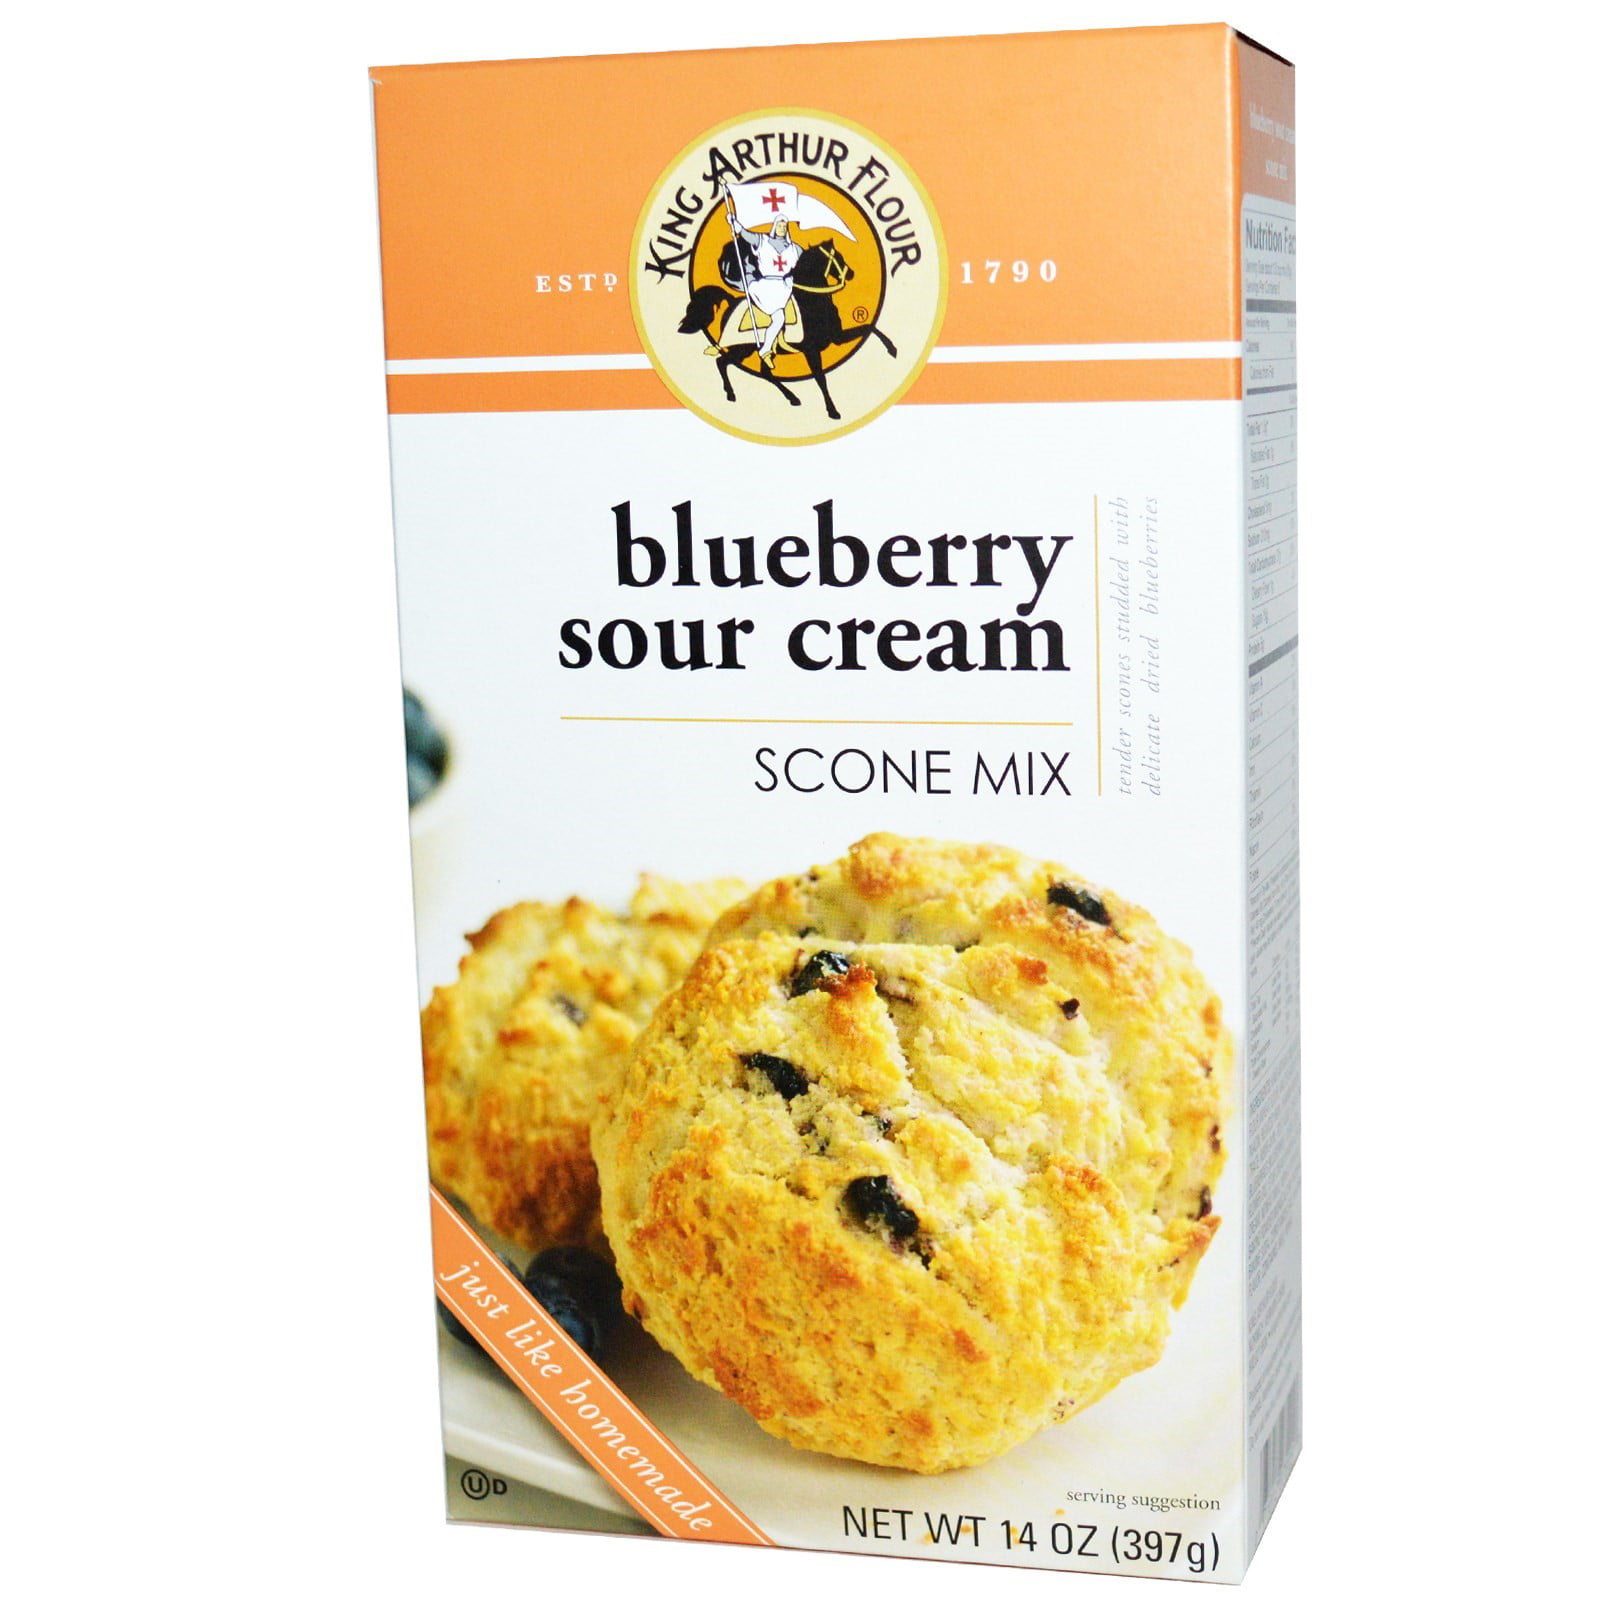 King Arthur Flour Blueberry Sour Cream Scone Mix 14 oz. Box by King Arthur Flour